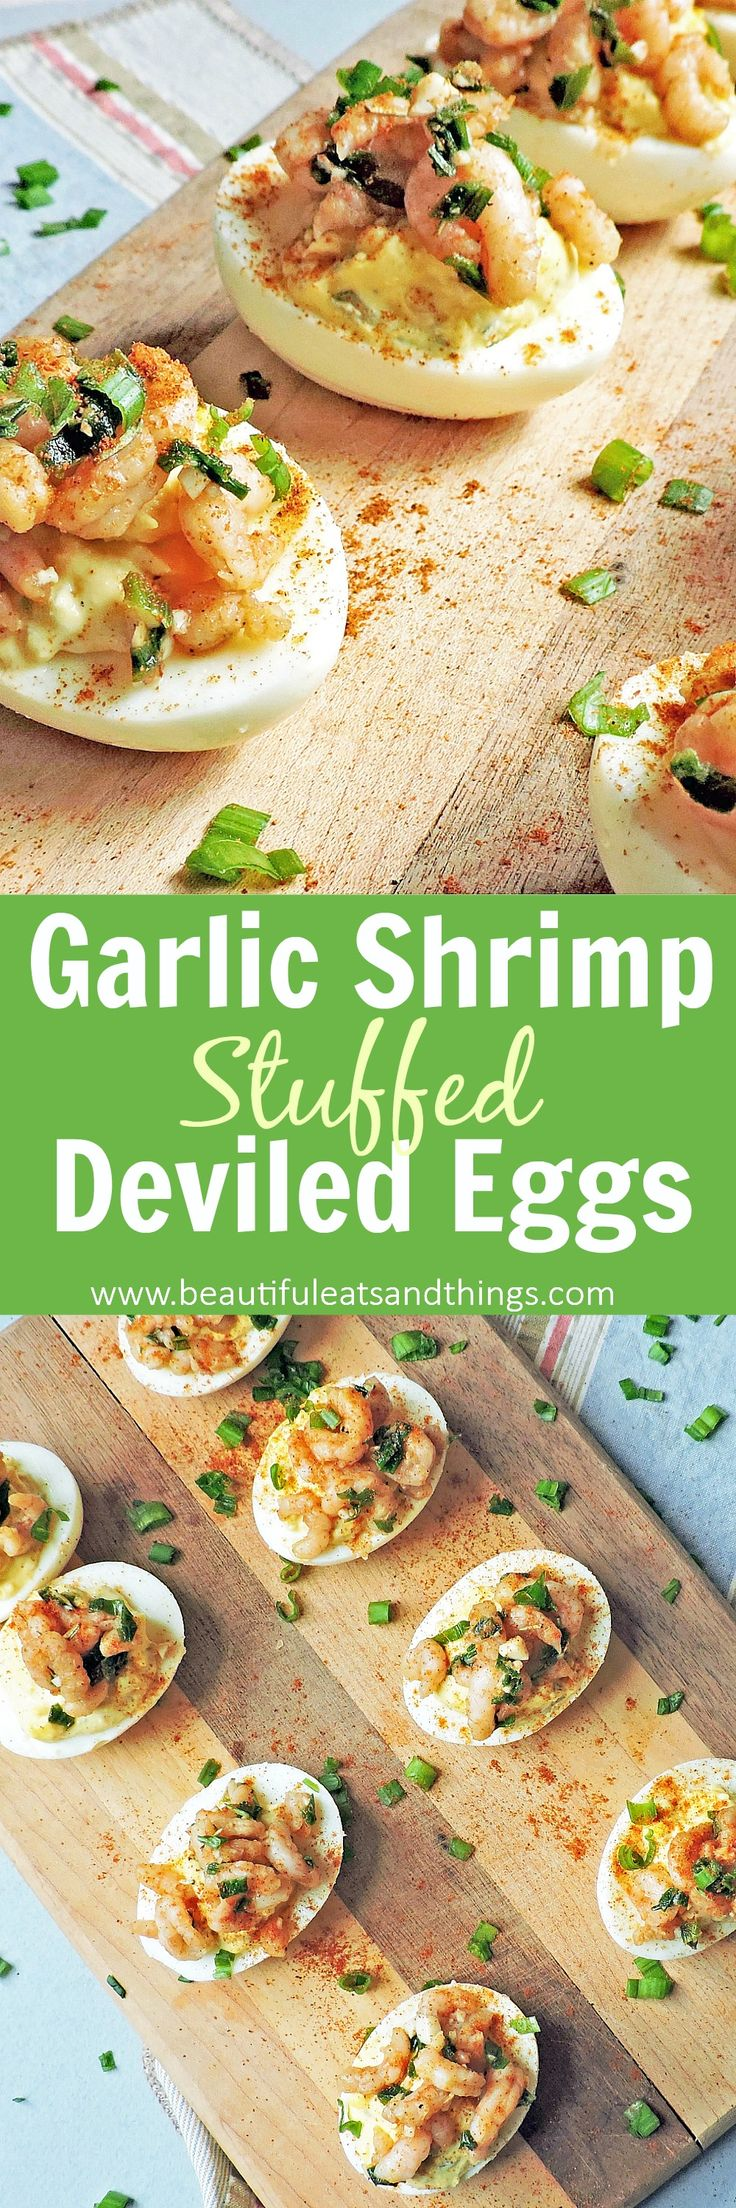 These Garlic Shrimp Stuffed Deviled Eggs are the perfect appetizer! So far from the average deviled egg! Your taste buds will thank you!  deviled eggs | stuffed deviled eggs | deviled egg recipes | healthy appetizers | appetizers | keto | low carb